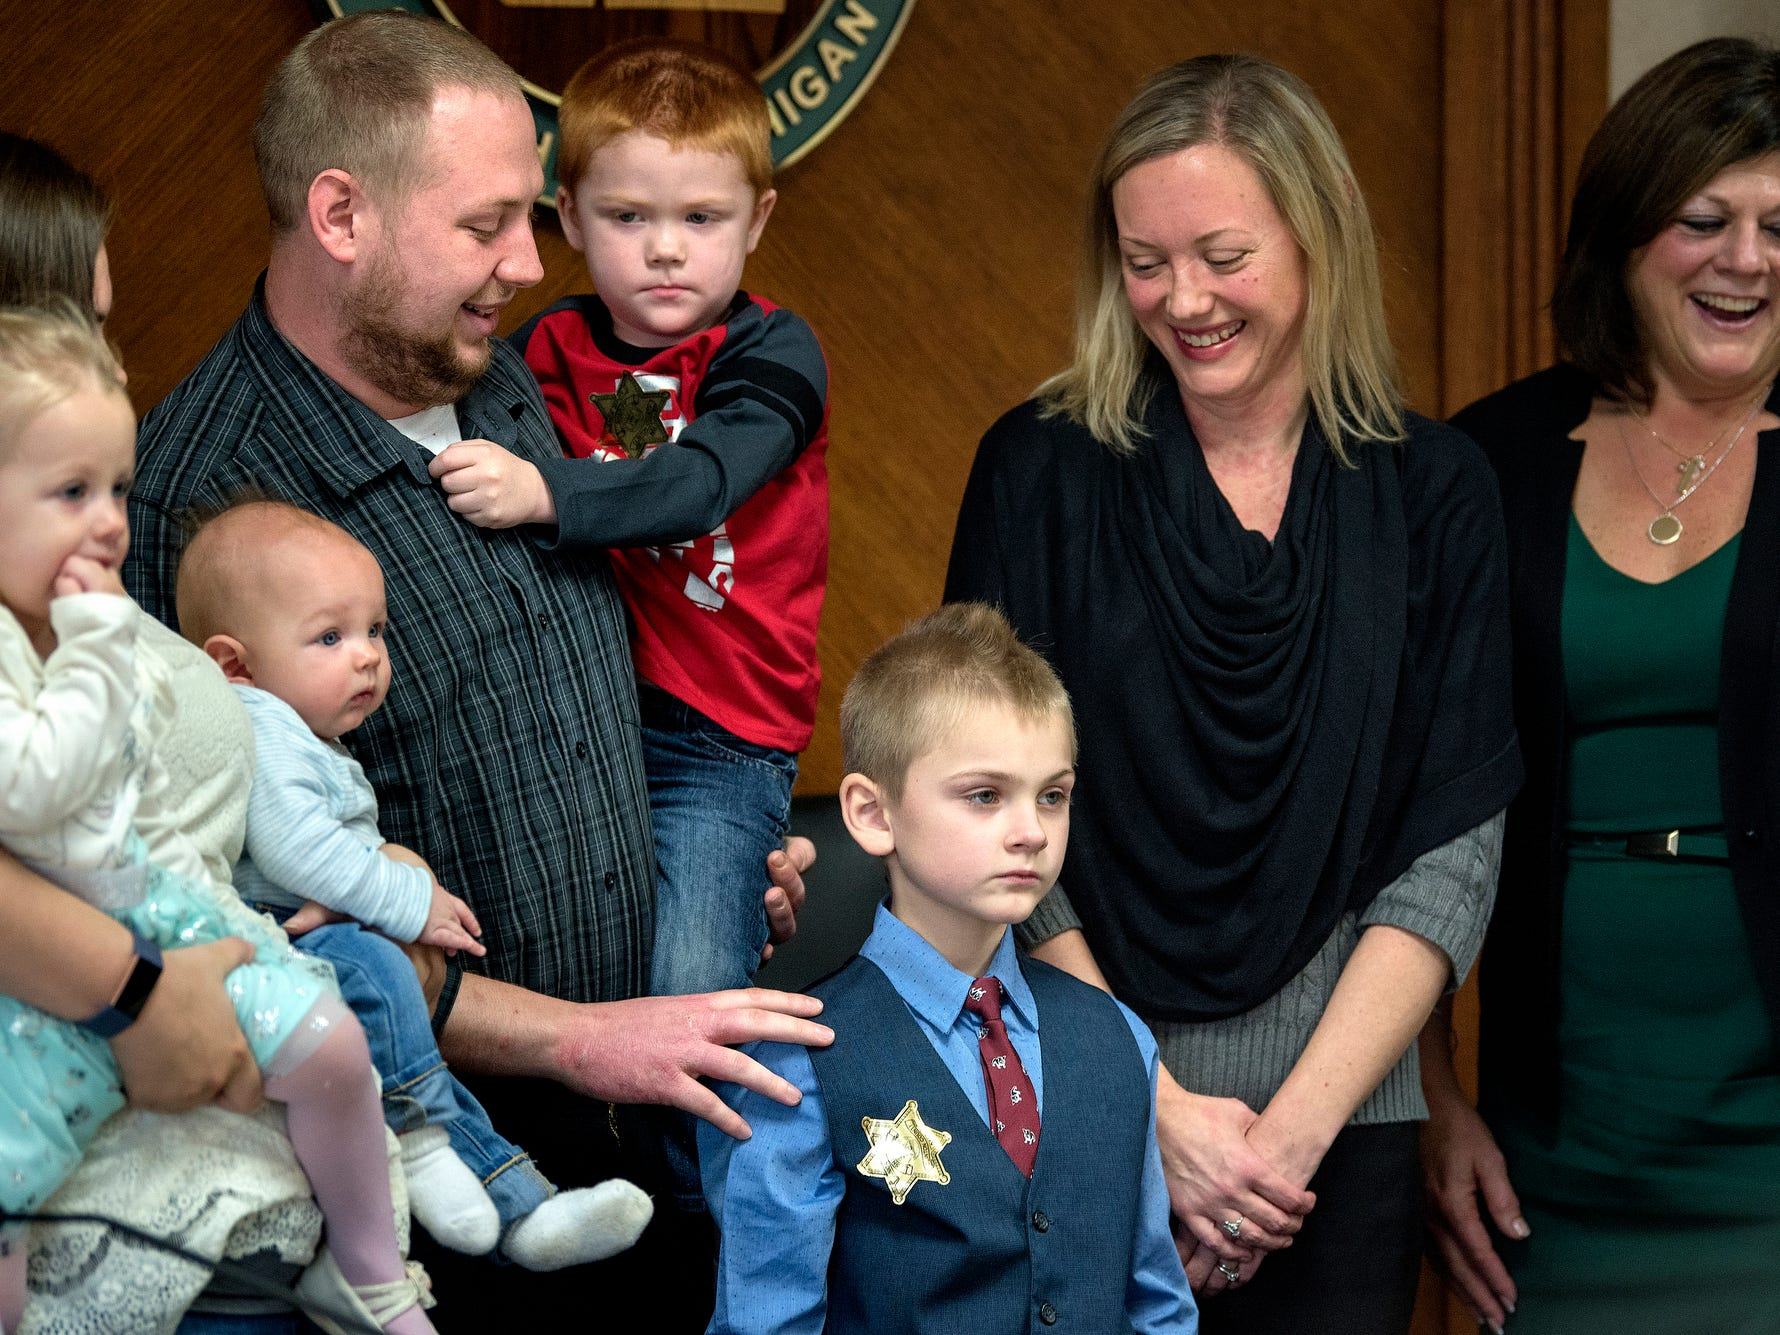 Seven-year-old Grayson Wilder, center, stands with his family, left, Michigan Supreme Court Justice Elizabeth T. Clement, second from right, and Clinton County Chief Probate Judge Lisa Sullivan, far right, after Grayson's adoption was finalized during a Michigan Adoption Day ceremony at the Clinton County Courthouse in St. Johns. Four families finalized the adoptions of six children.